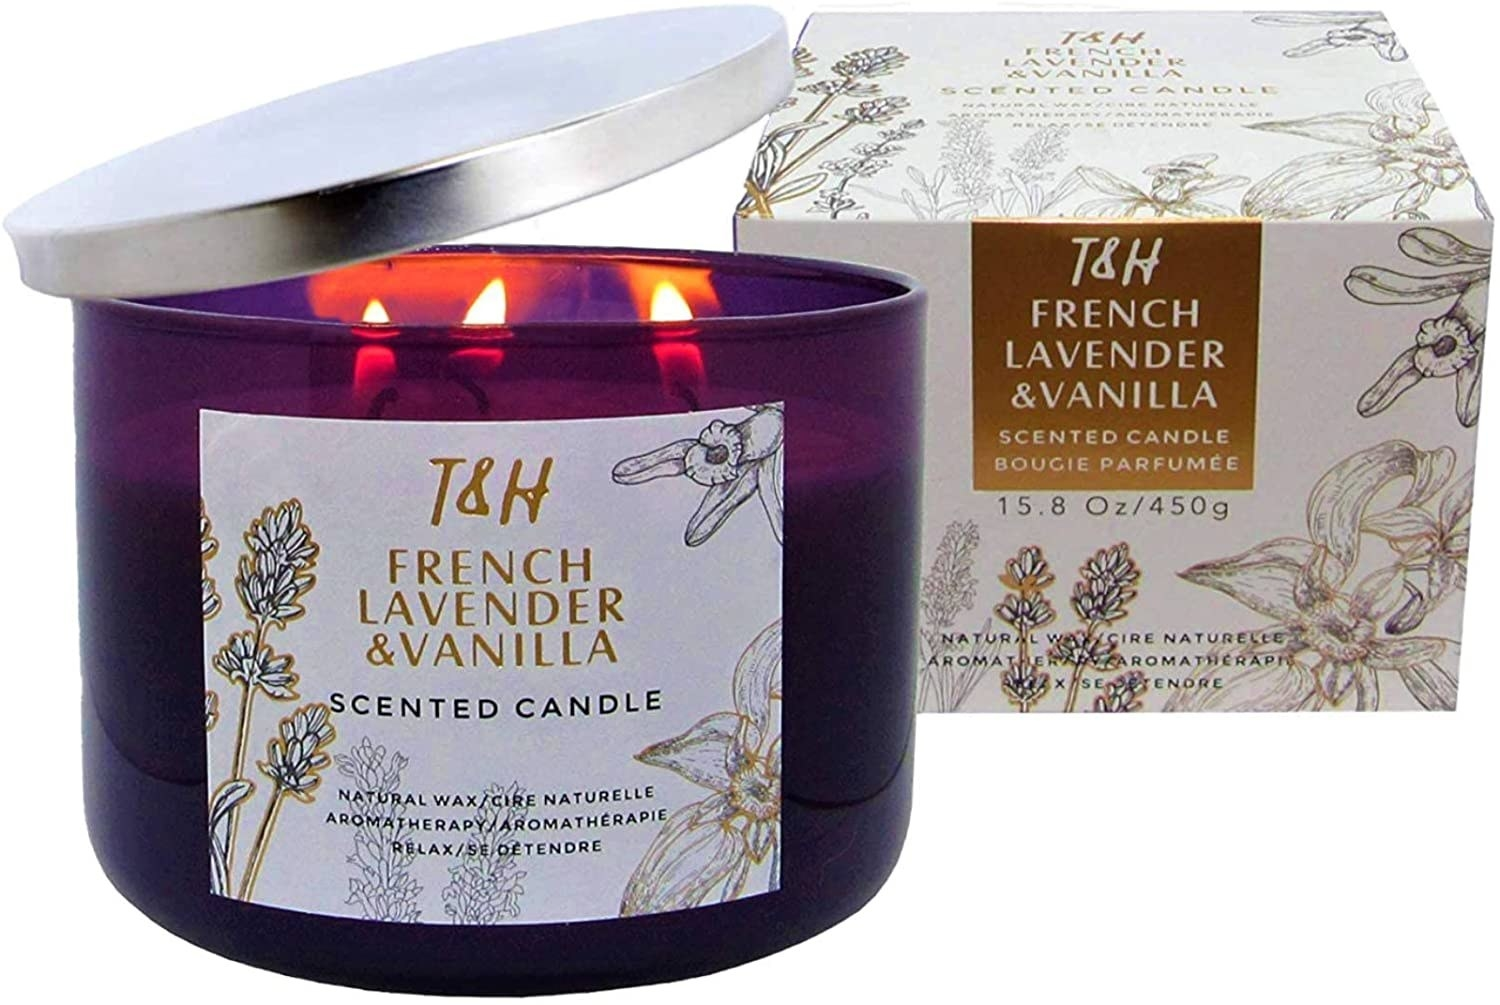 the t & h french lavender and vanilla candle